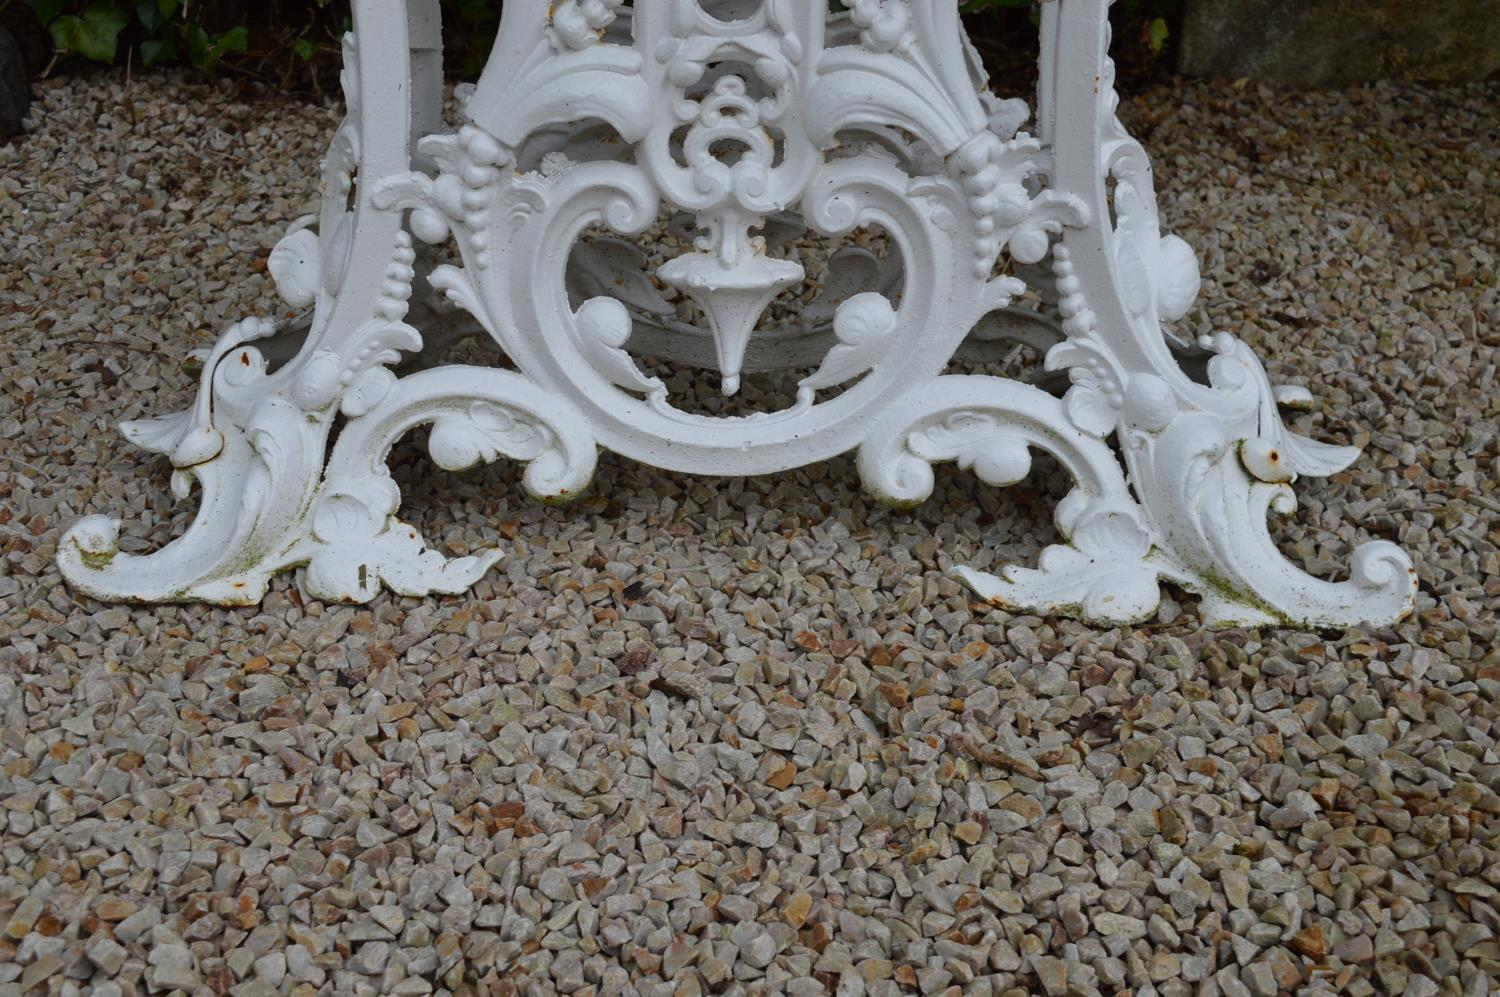 Cast iron garden table marble top in the Coalbrookdale style. 90W 75H 36D - Image 3 of 3